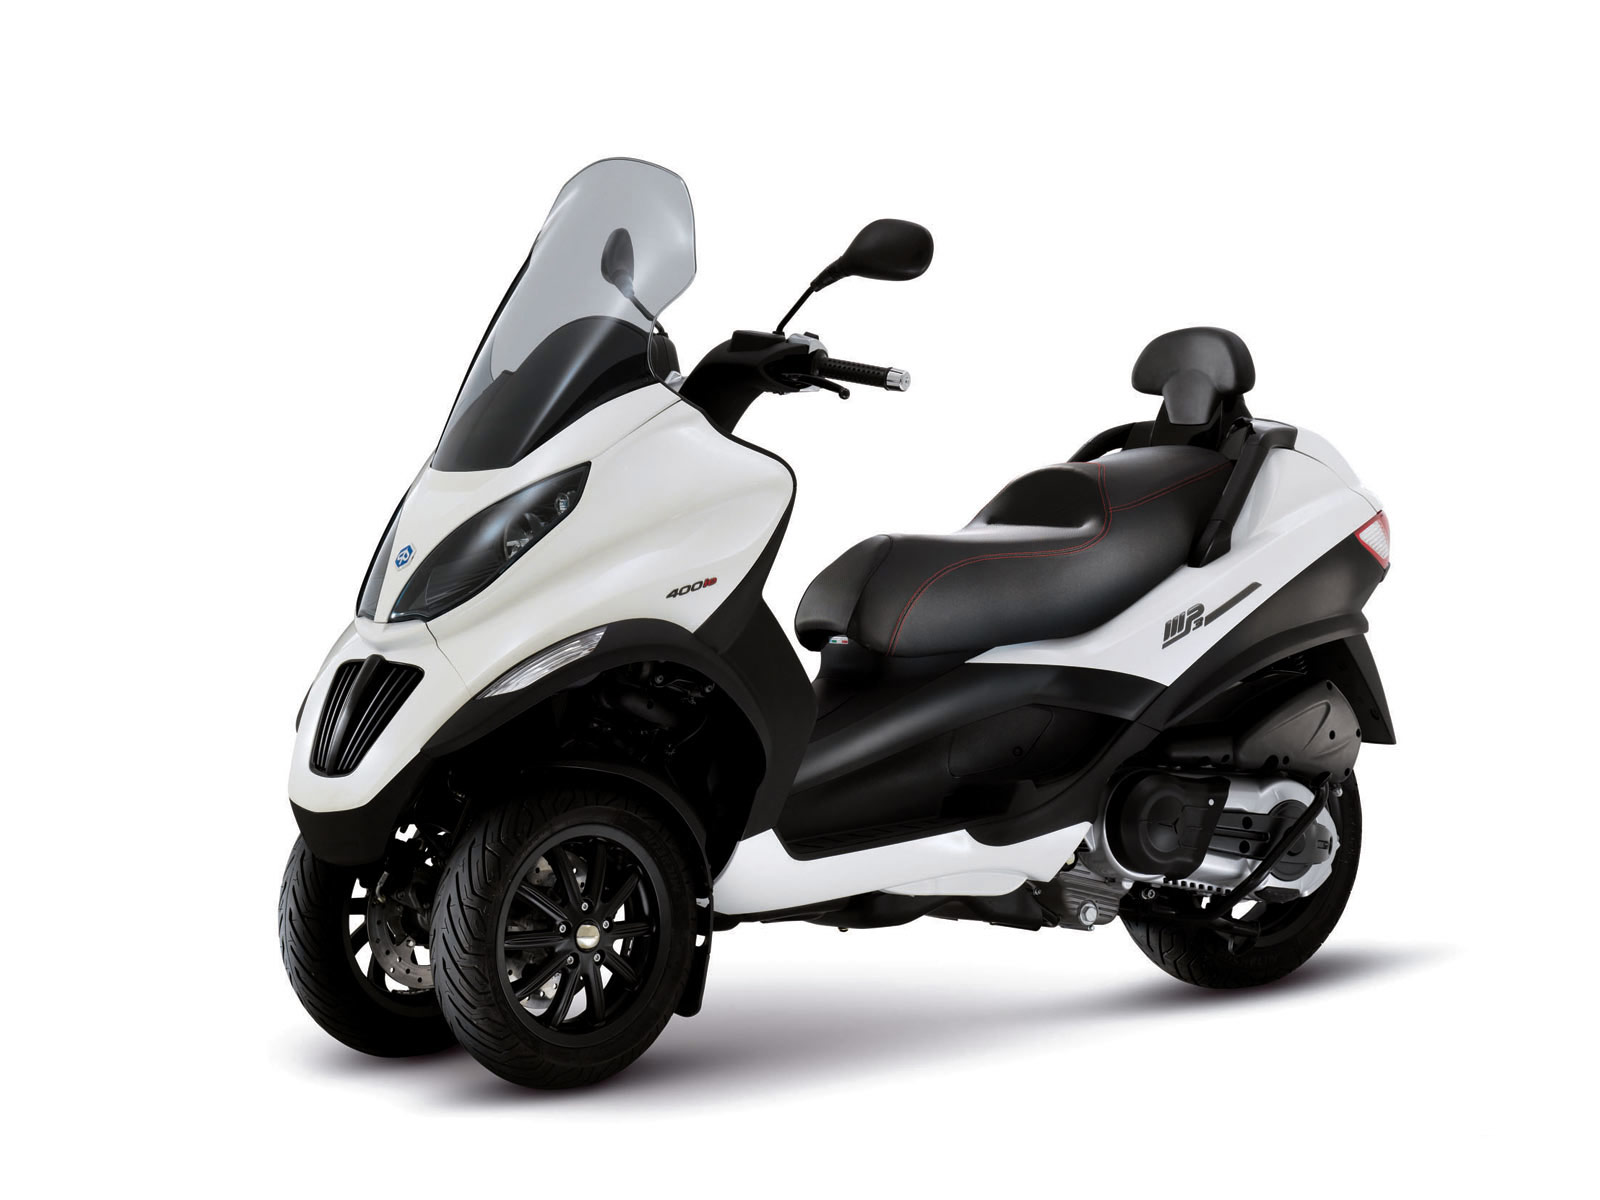 2011 Piaggio Mp3 400ie Sport Scooter Pictures